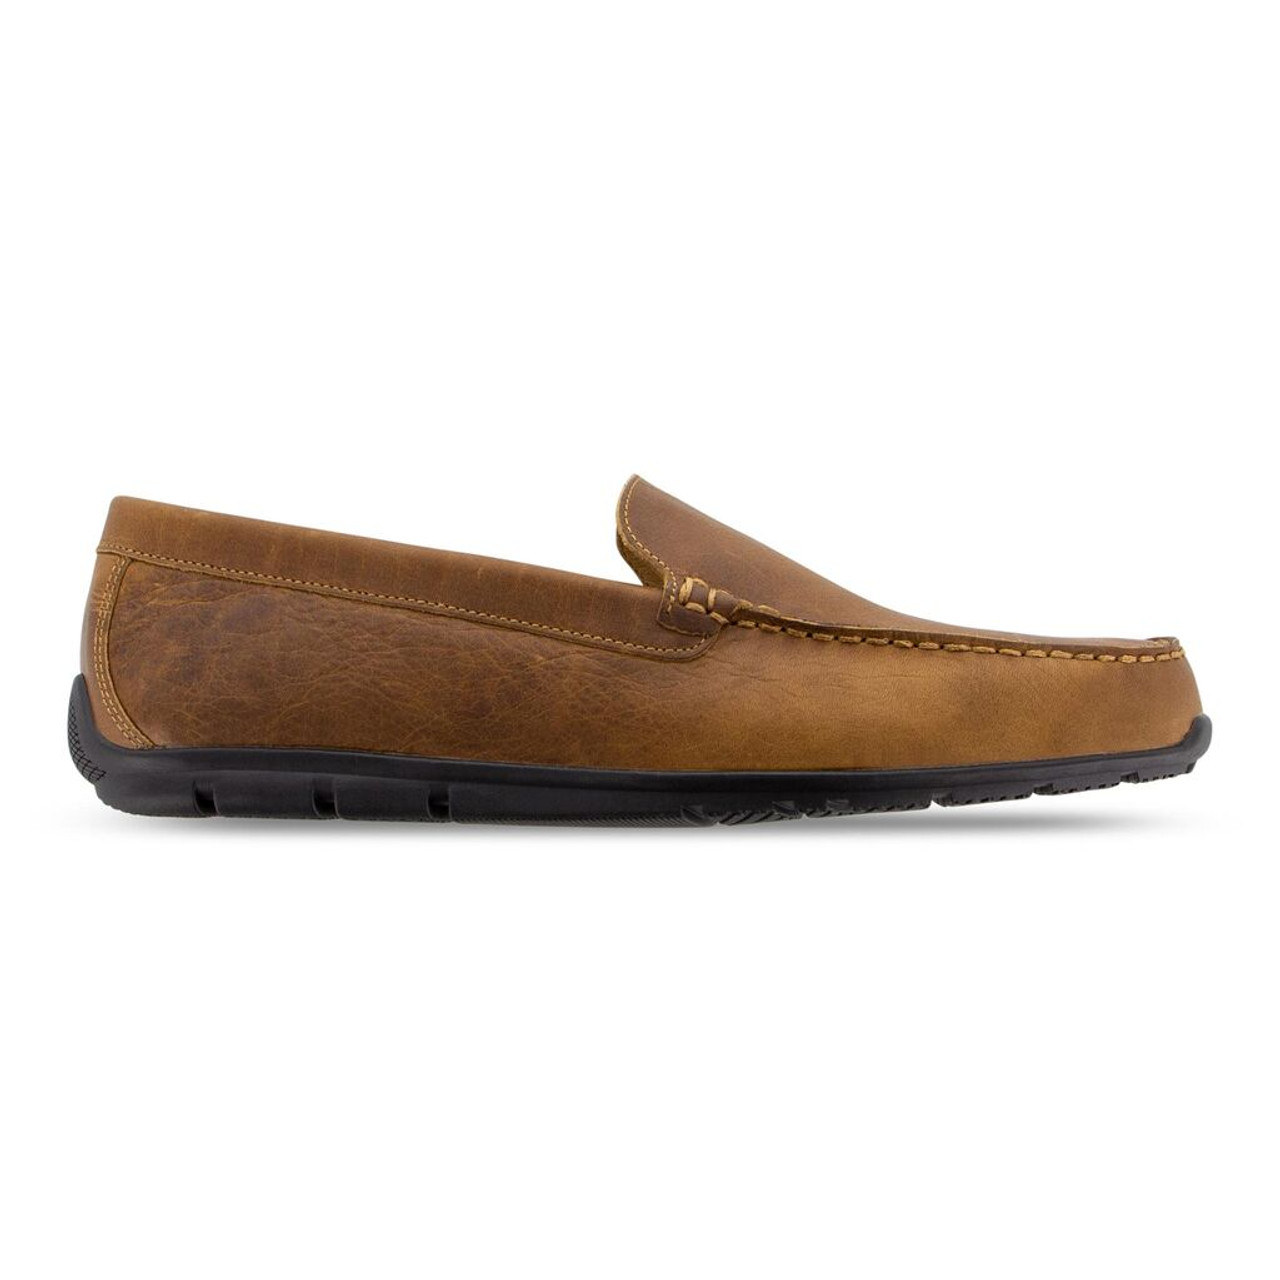 FootJoy Club Casuals Loafers - Taupe (79060)